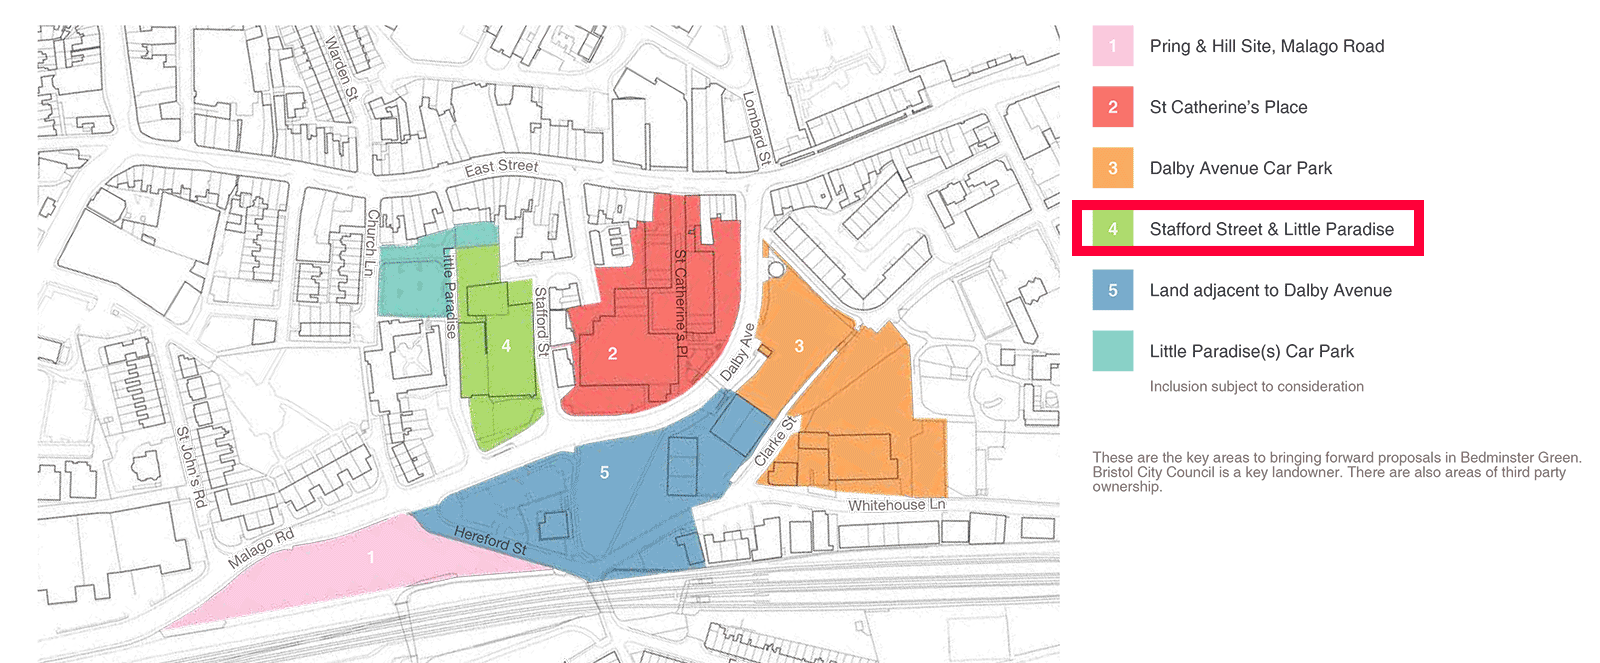 Site location within the Bedminster Green Framework area